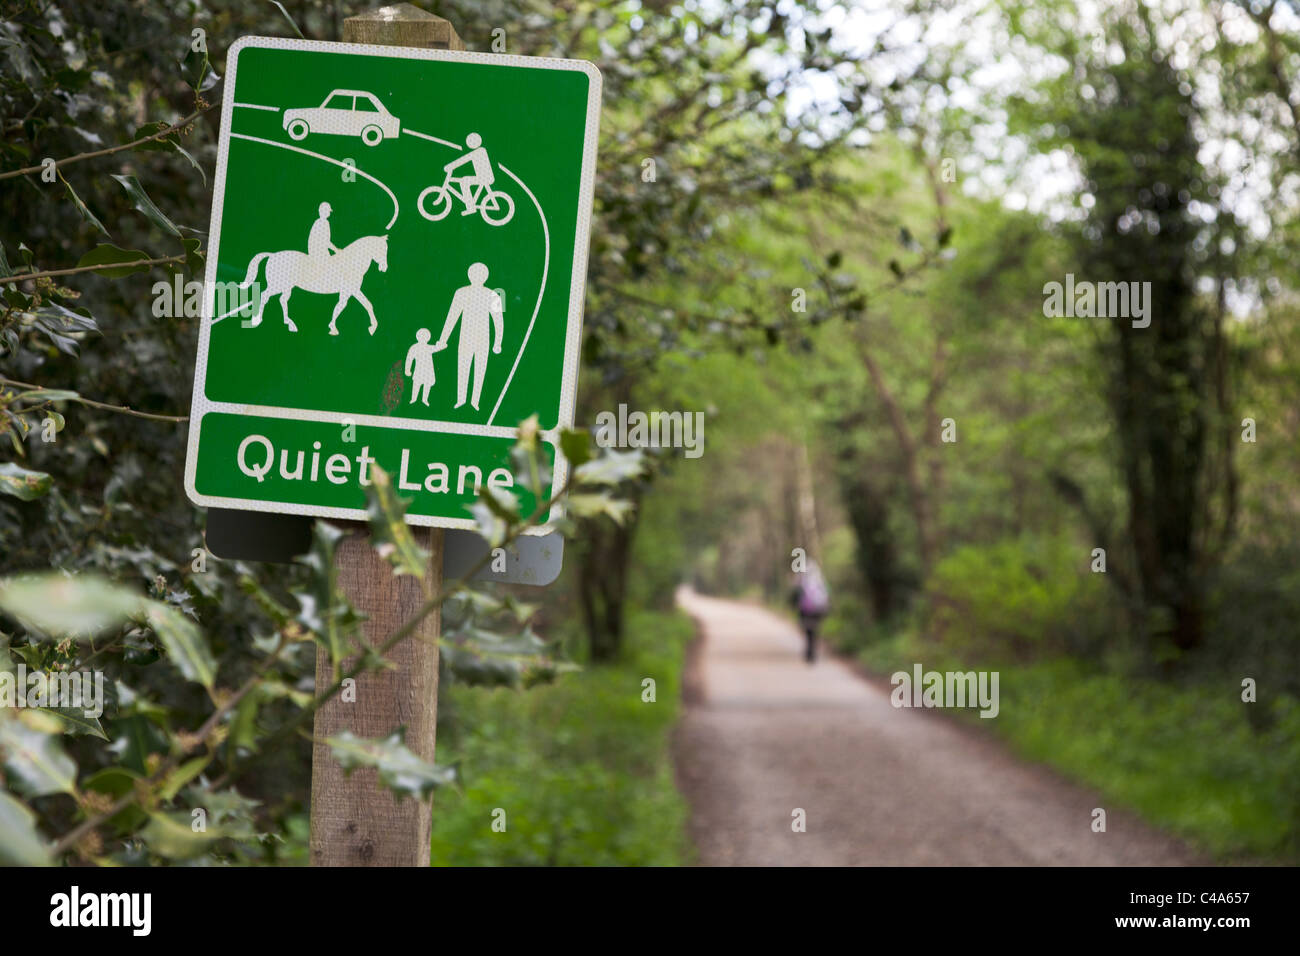 Quiet land sign on country lane at Hindhead - Stock Image